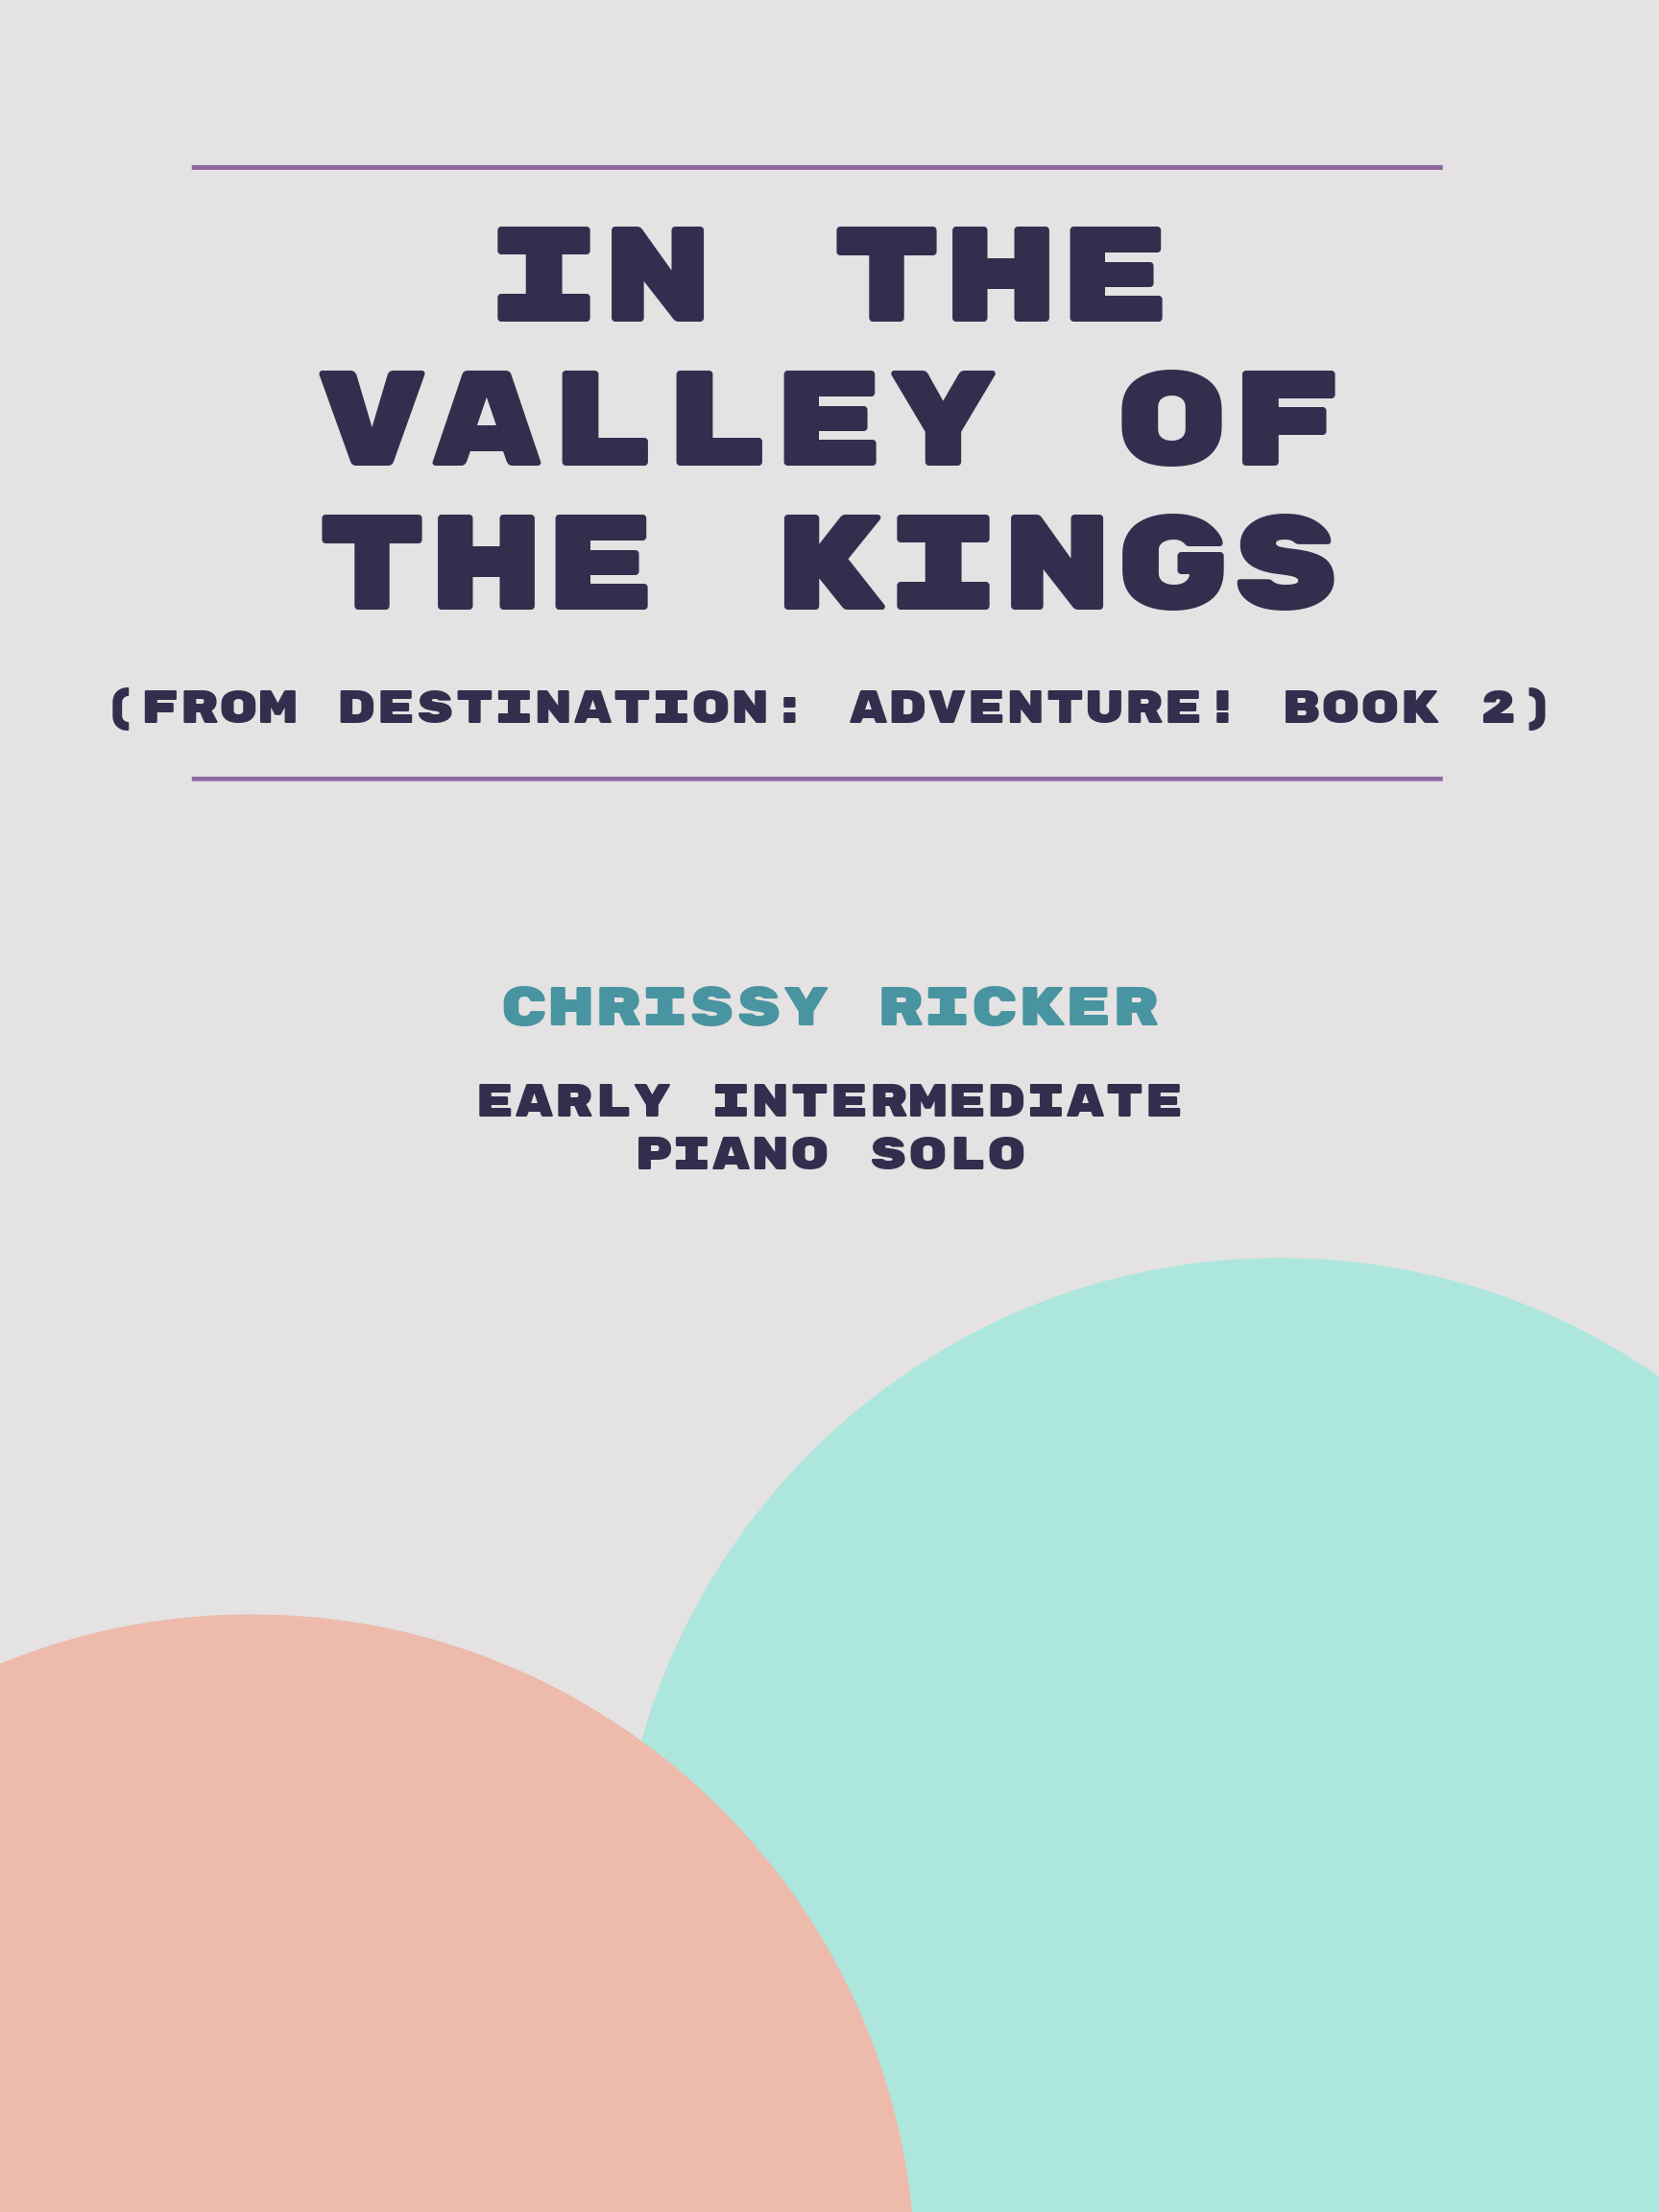 In the Valley of the Kings by Chrissy Ricker